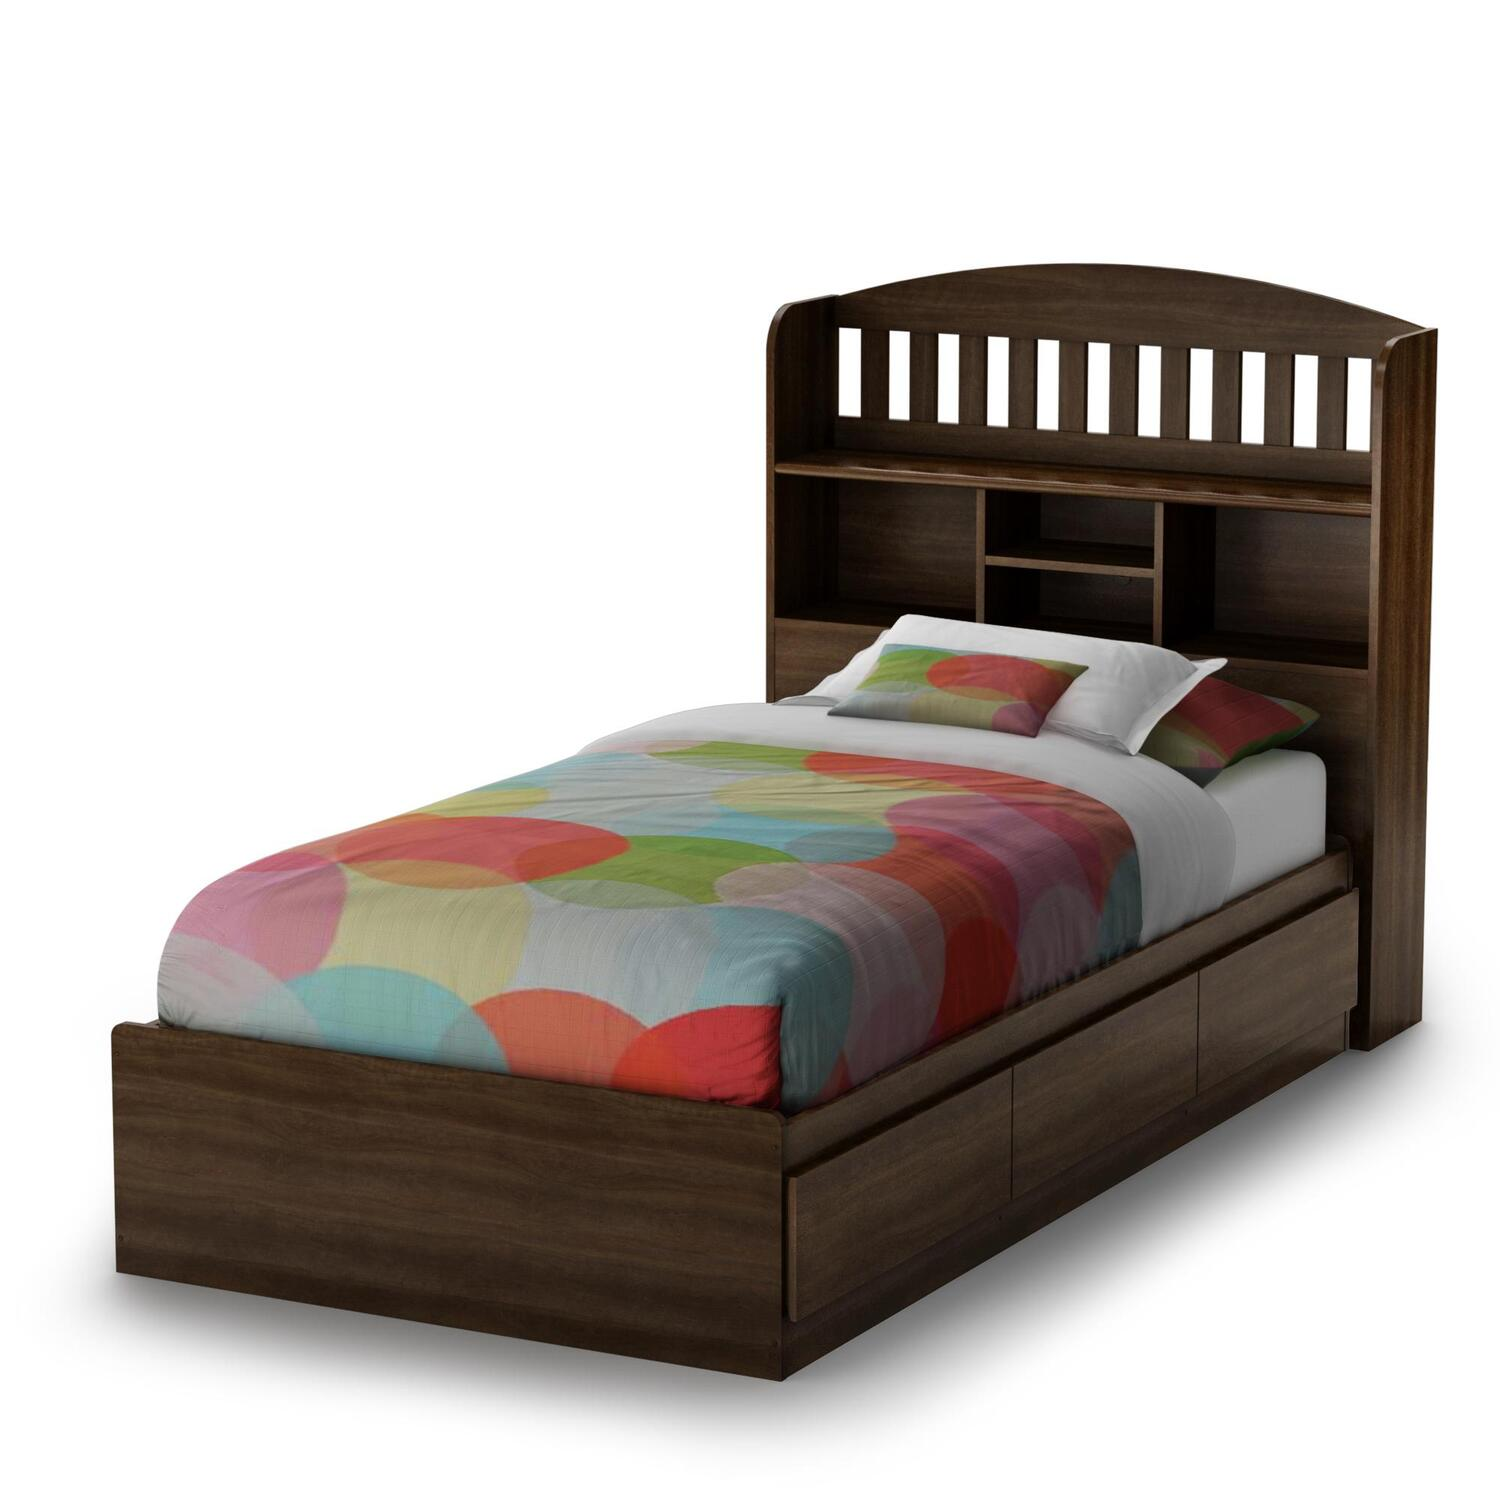 Twin bed with storage and bookcase headboard elegance for Bookshelf bed headboard